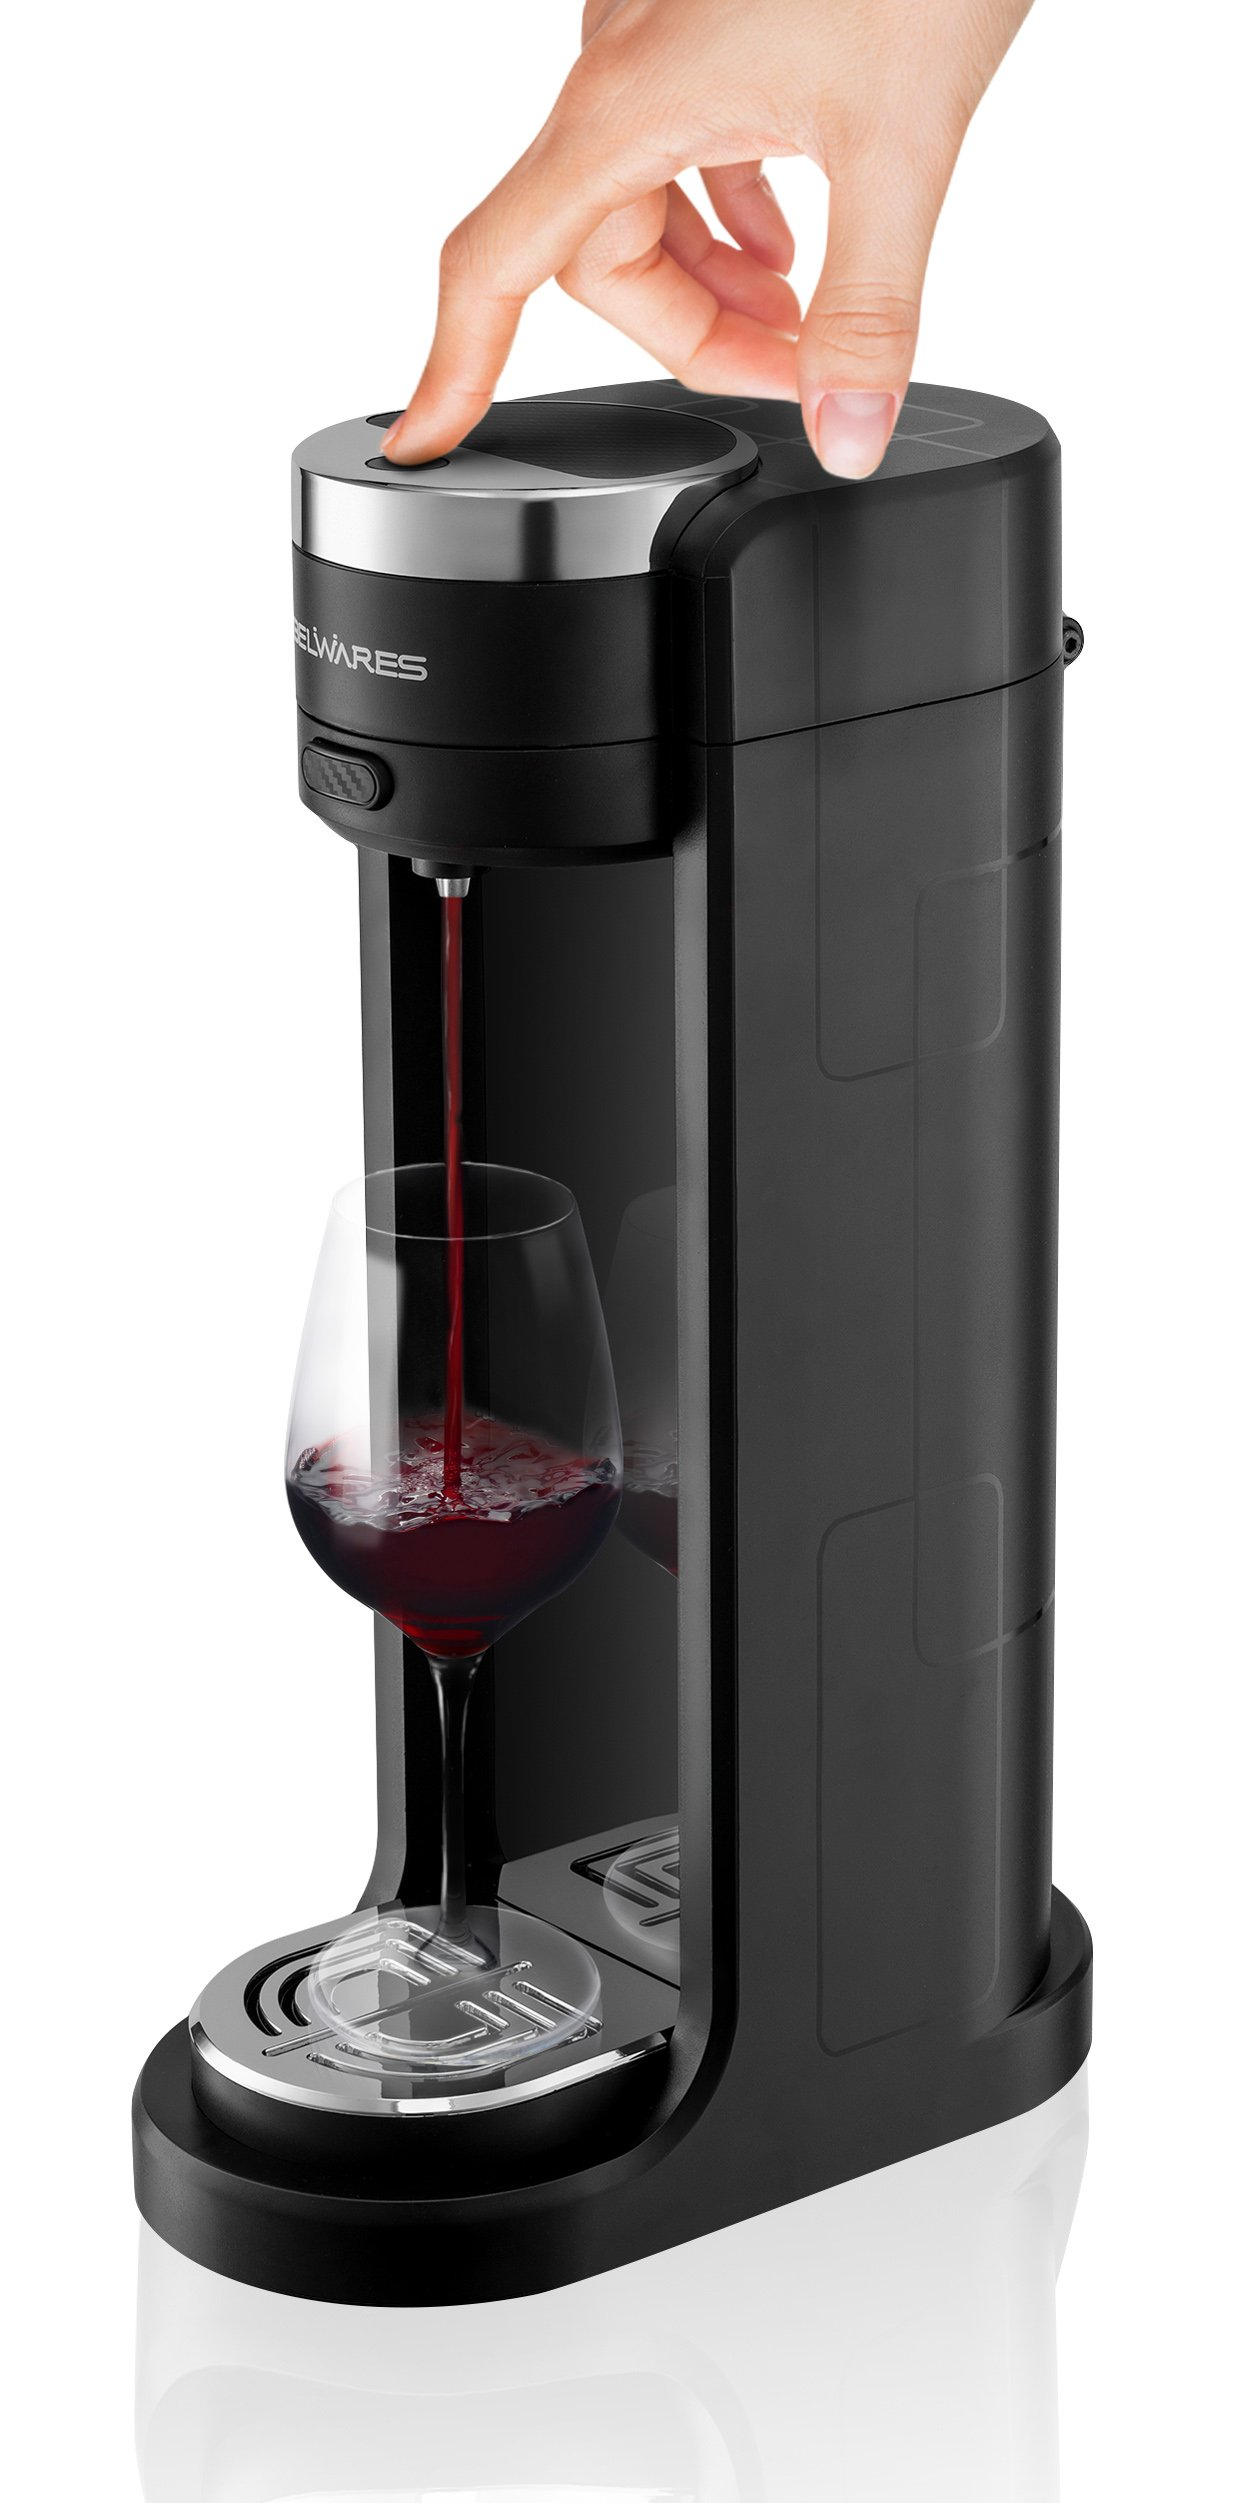 Electric Wine Aerator Dispenser Oxidizes, Decants, and Pours Red and White Wine, Battery Operated Decanter & Wine Aerator, Instant Luxury One Touch Control by Belwares